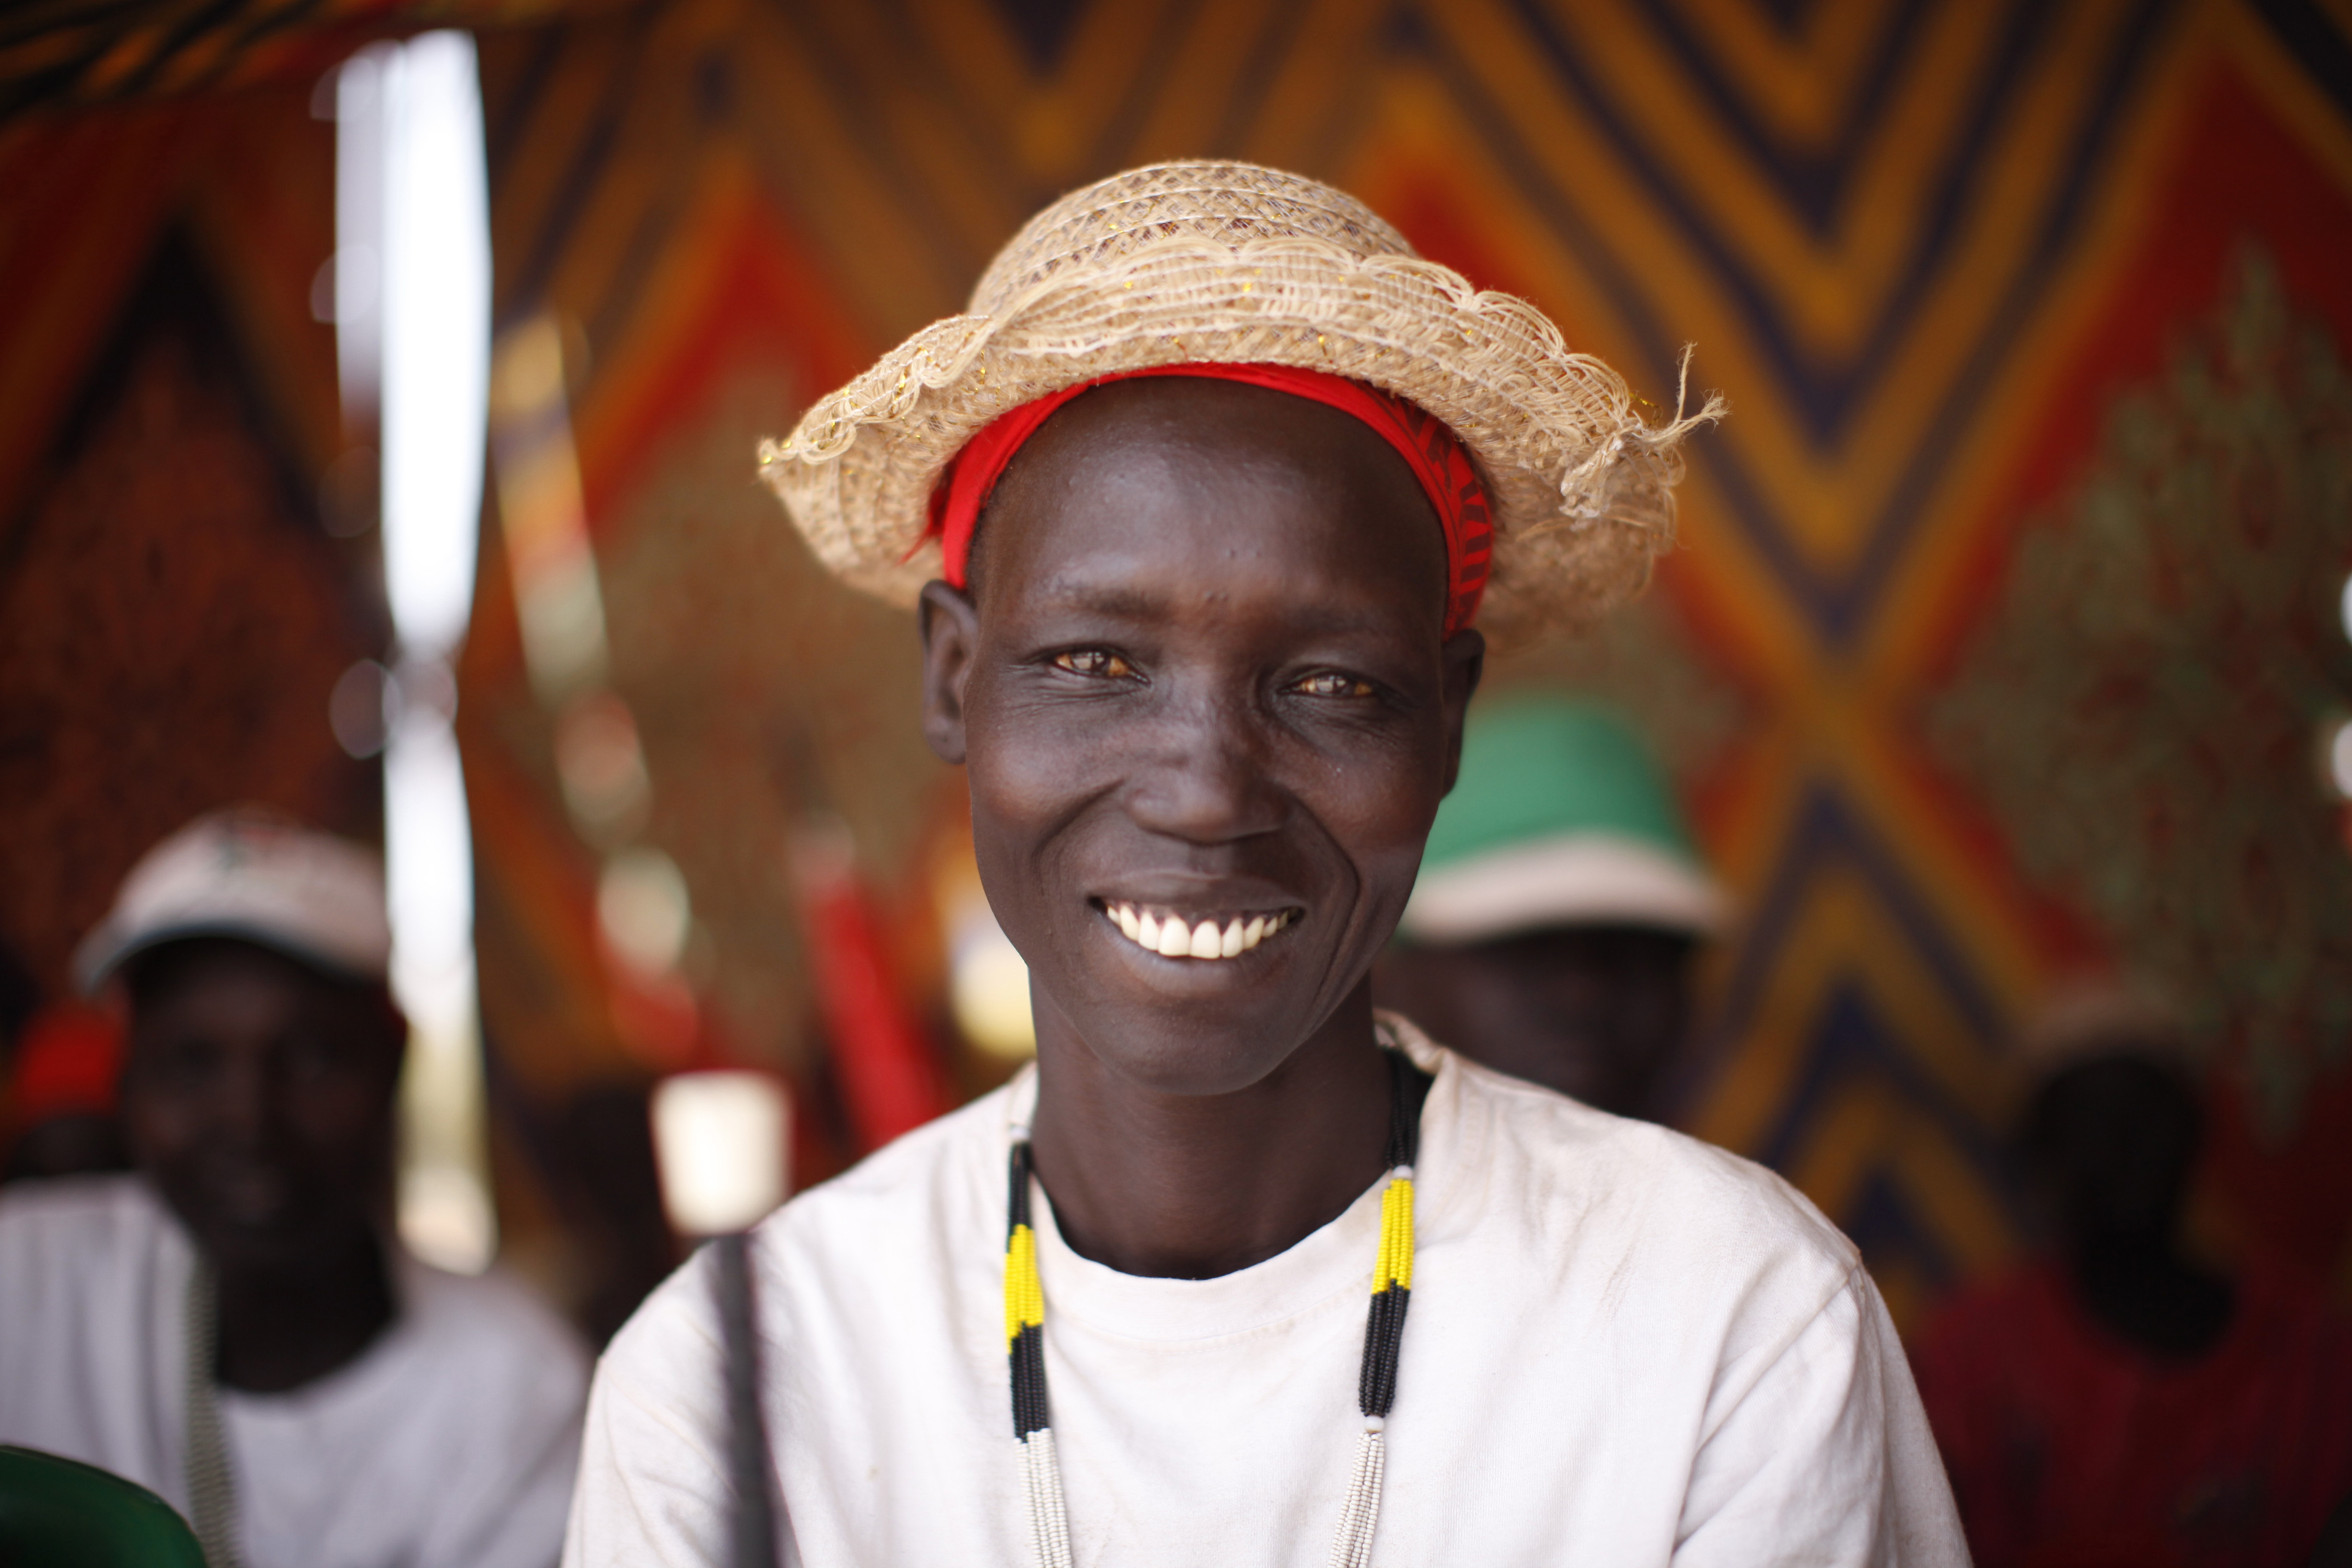 Program participant joins an International Women's Day celebration in South Sudan